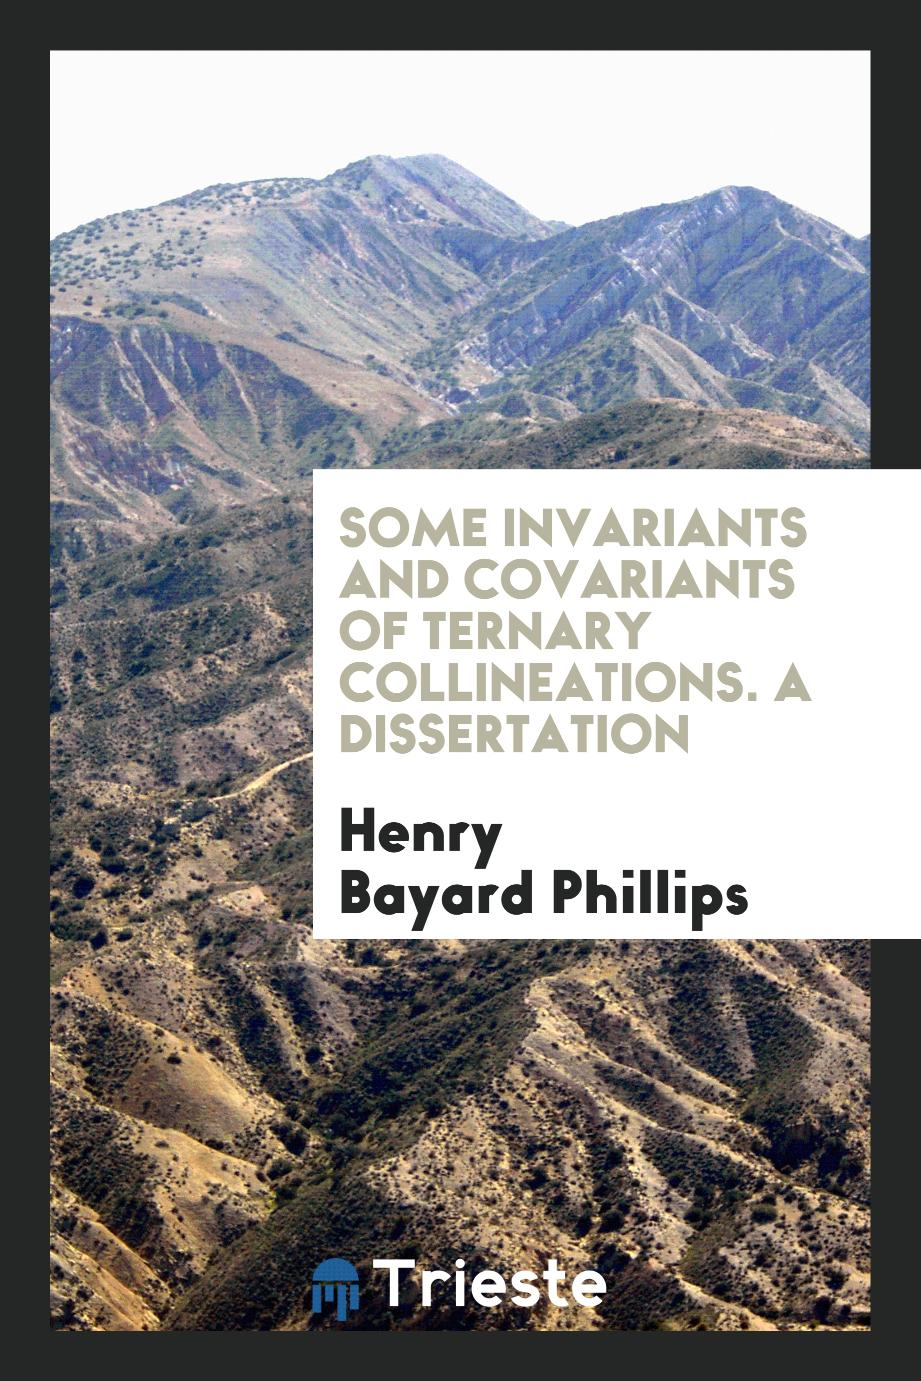 Some invariants and covariants of ternary collineations. A dissertation